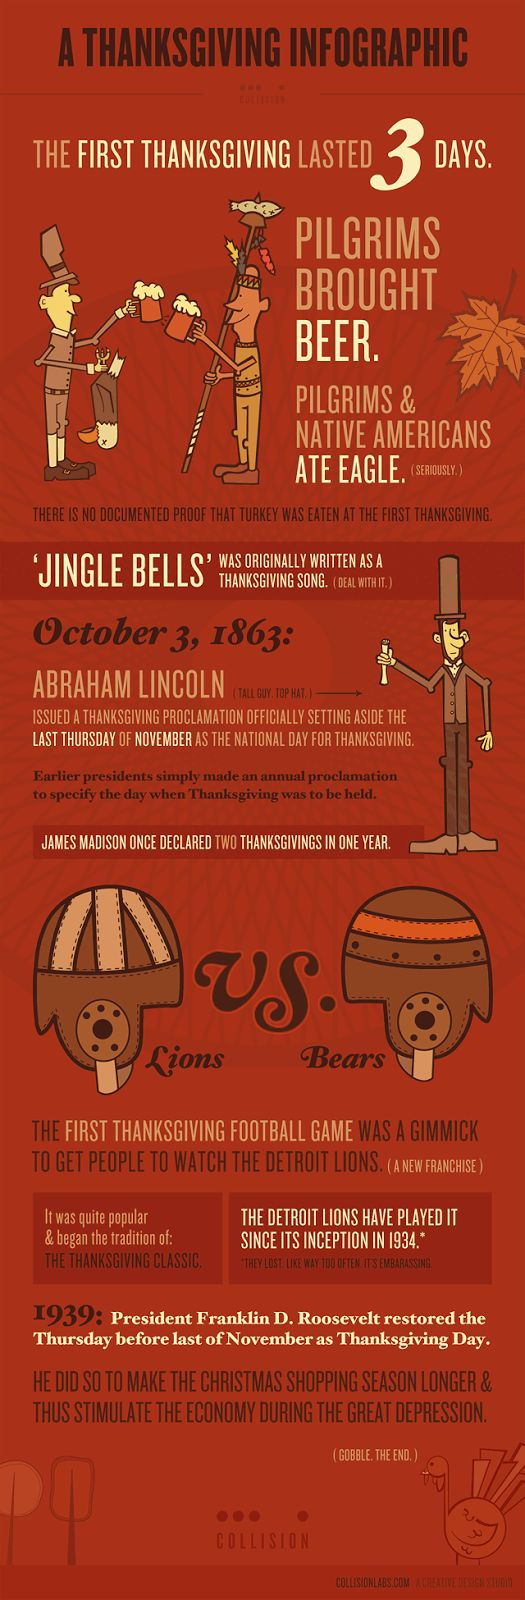 You'll never guess which Christmas song was originally written as a Thanksgiving song! -- Rotator Rod Weekend Infographic: Thanksgiving Fun Facts